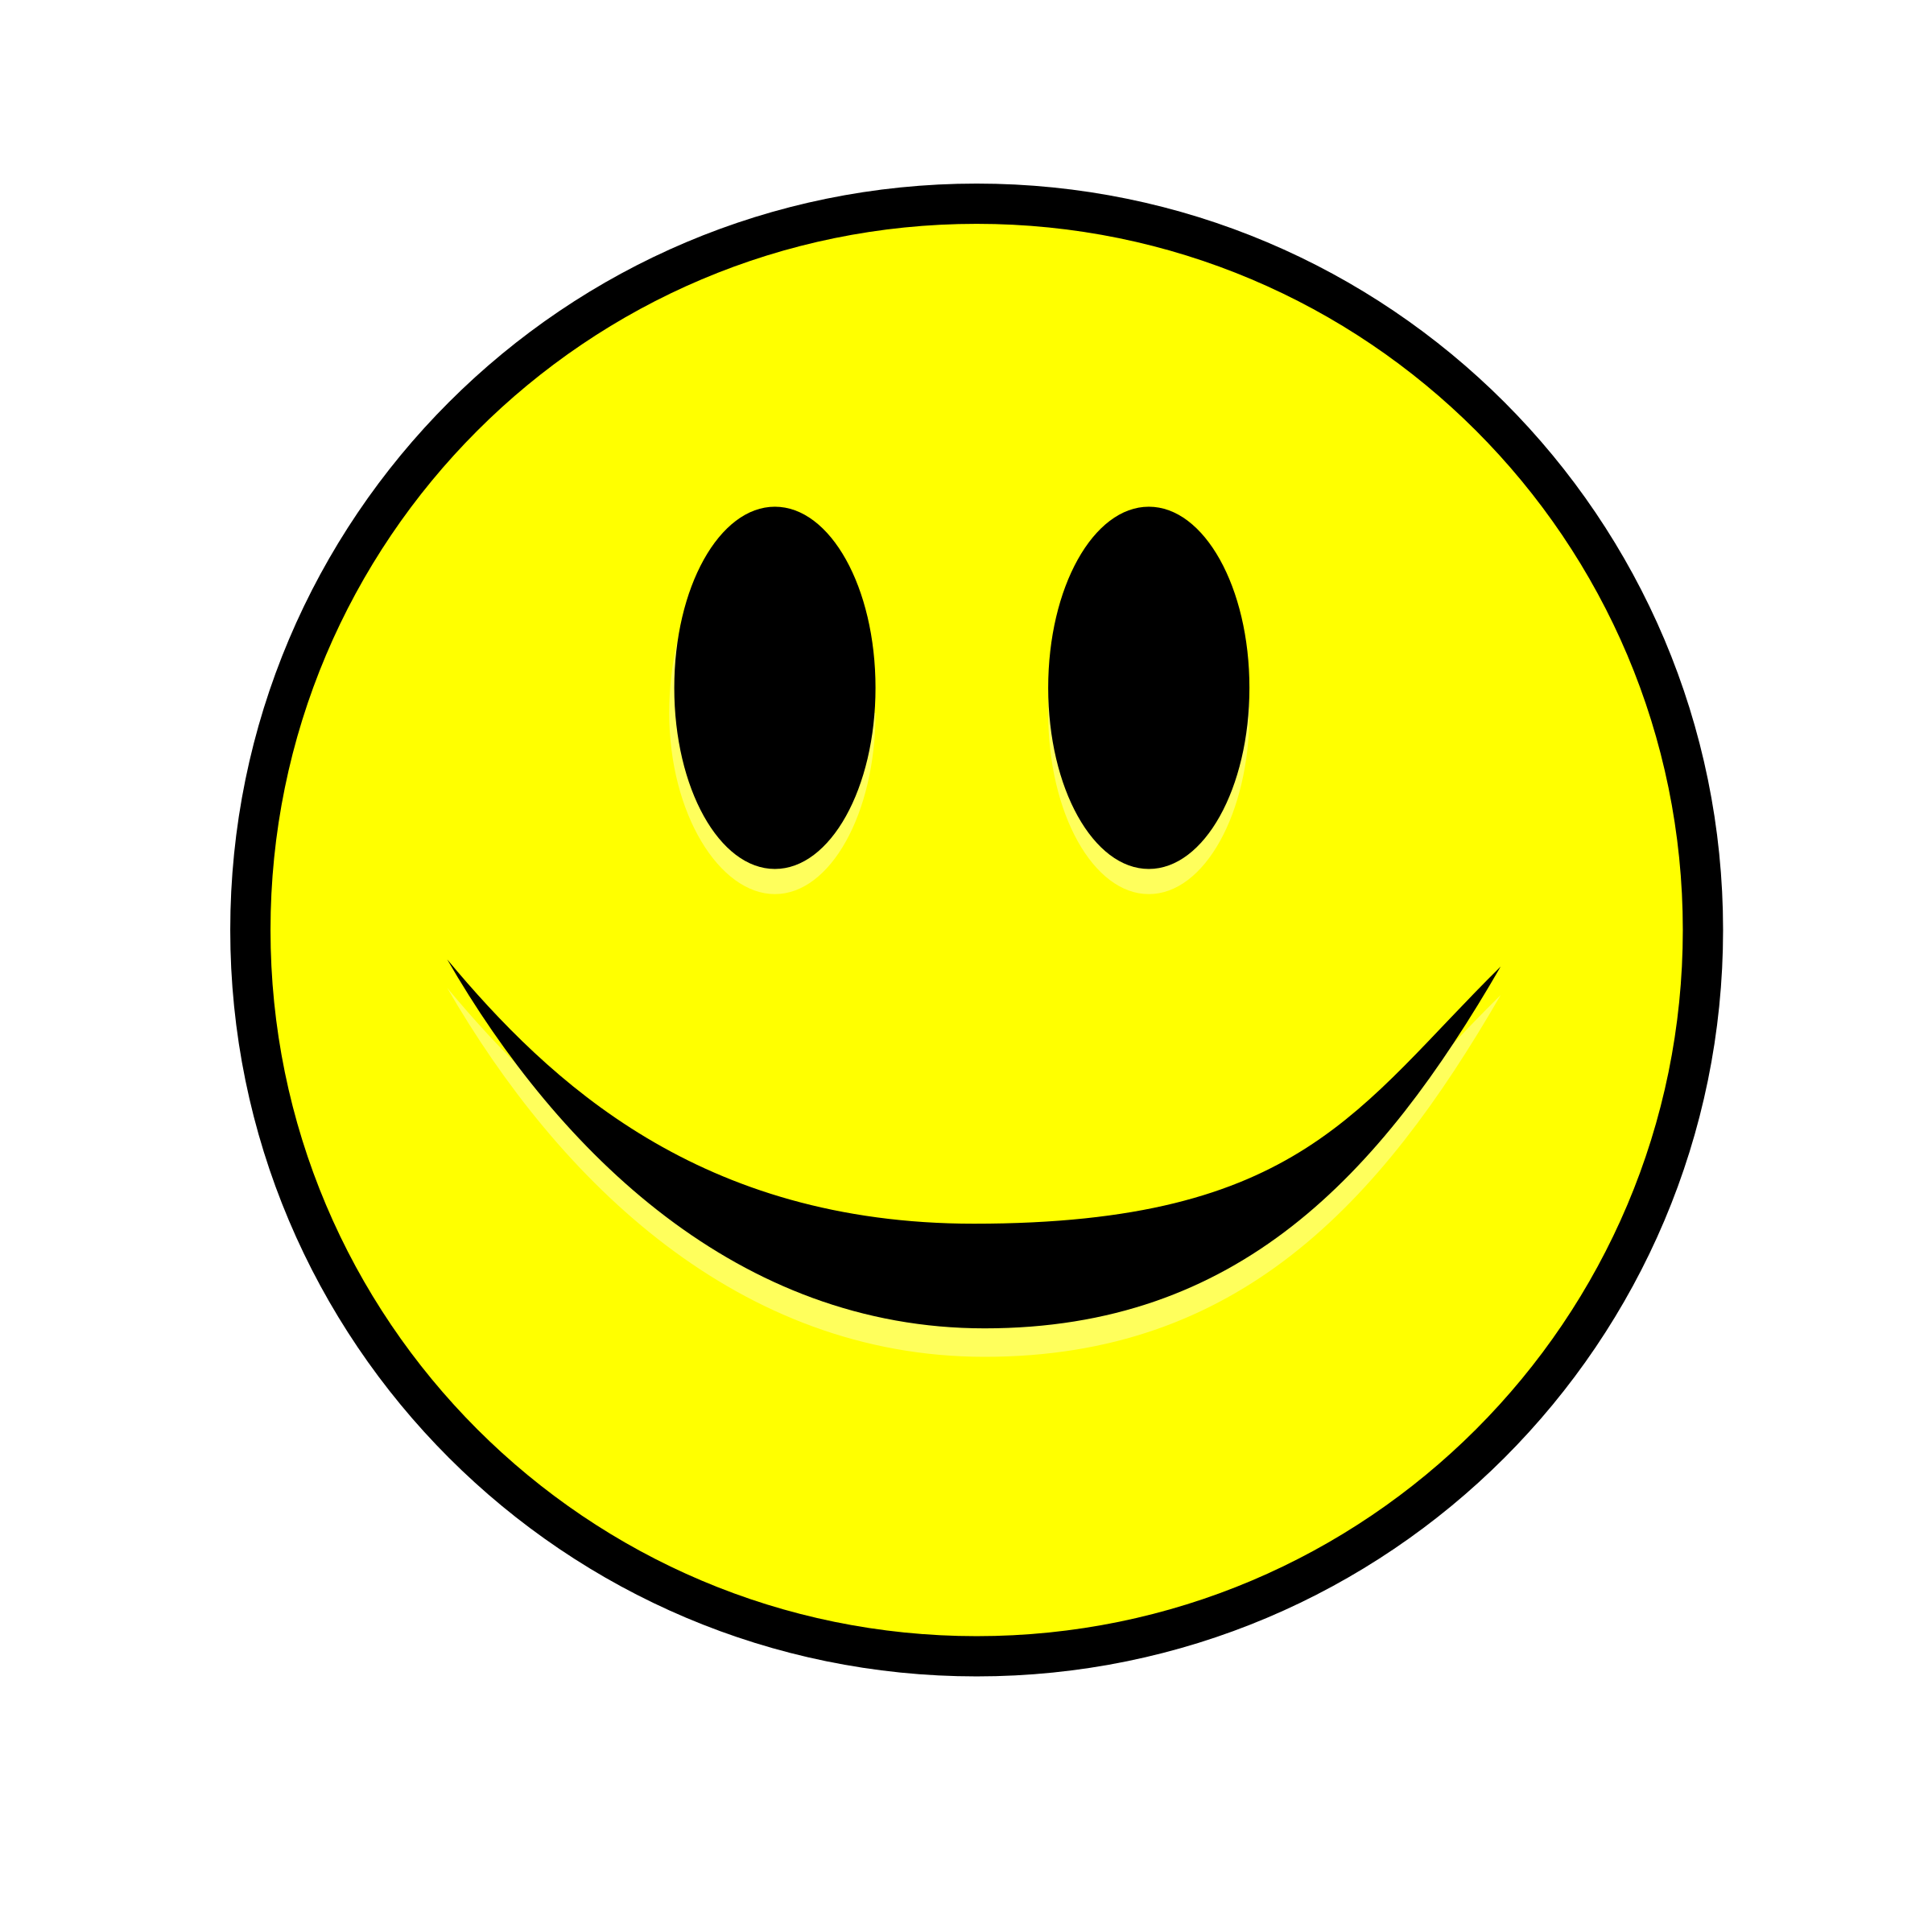 Smiling Smiley simple yellow by Manuela.